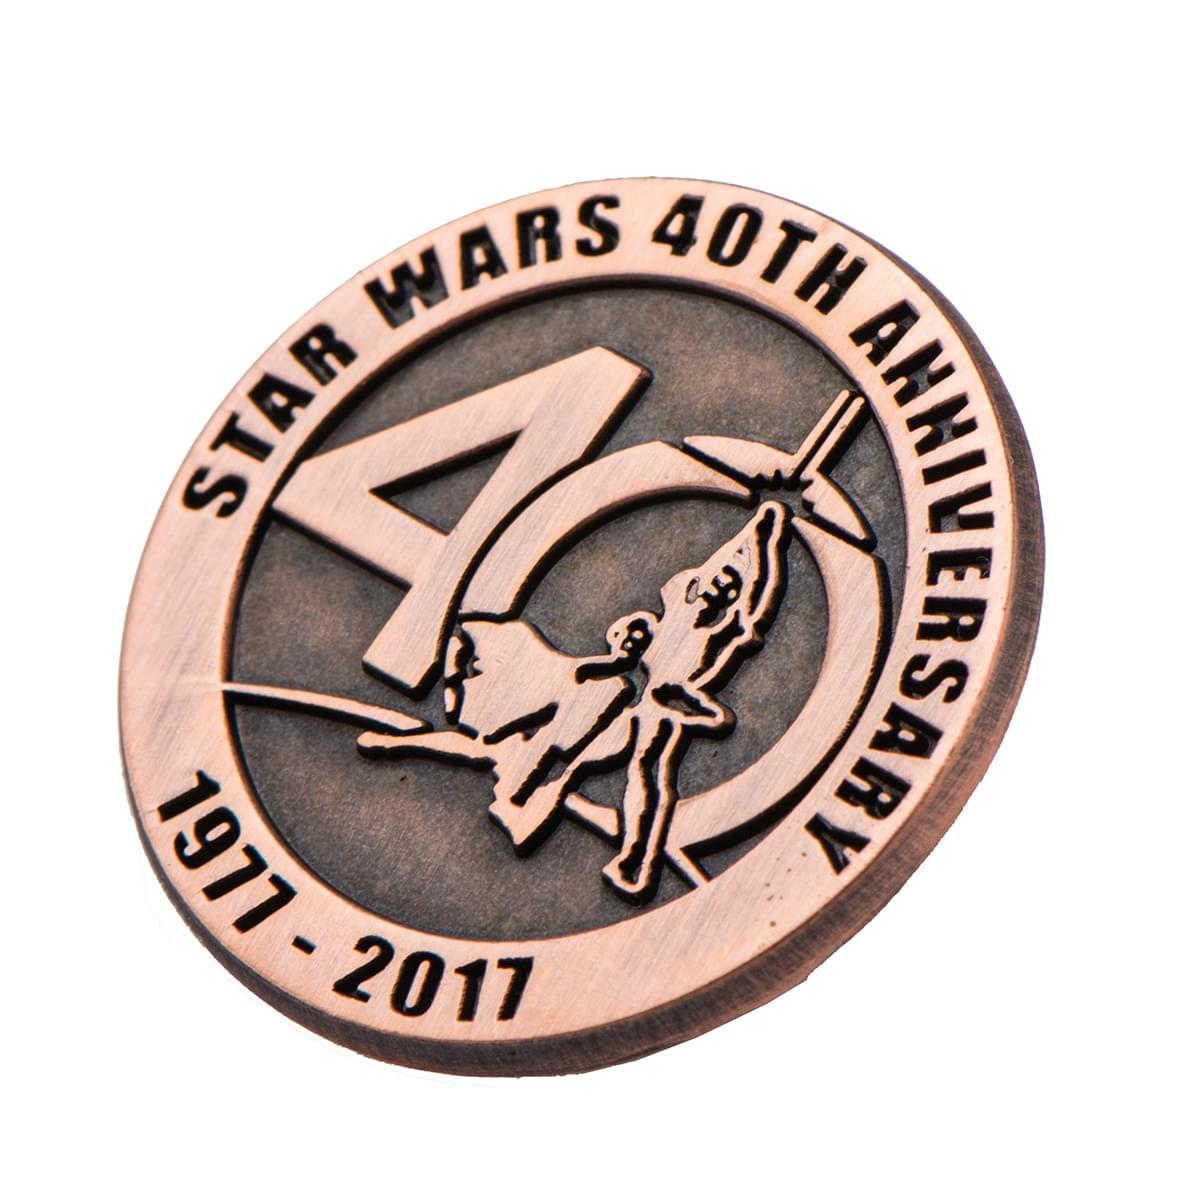 Star Wars 40th Anniversary Collectible Bronze Pin Sdcc 17